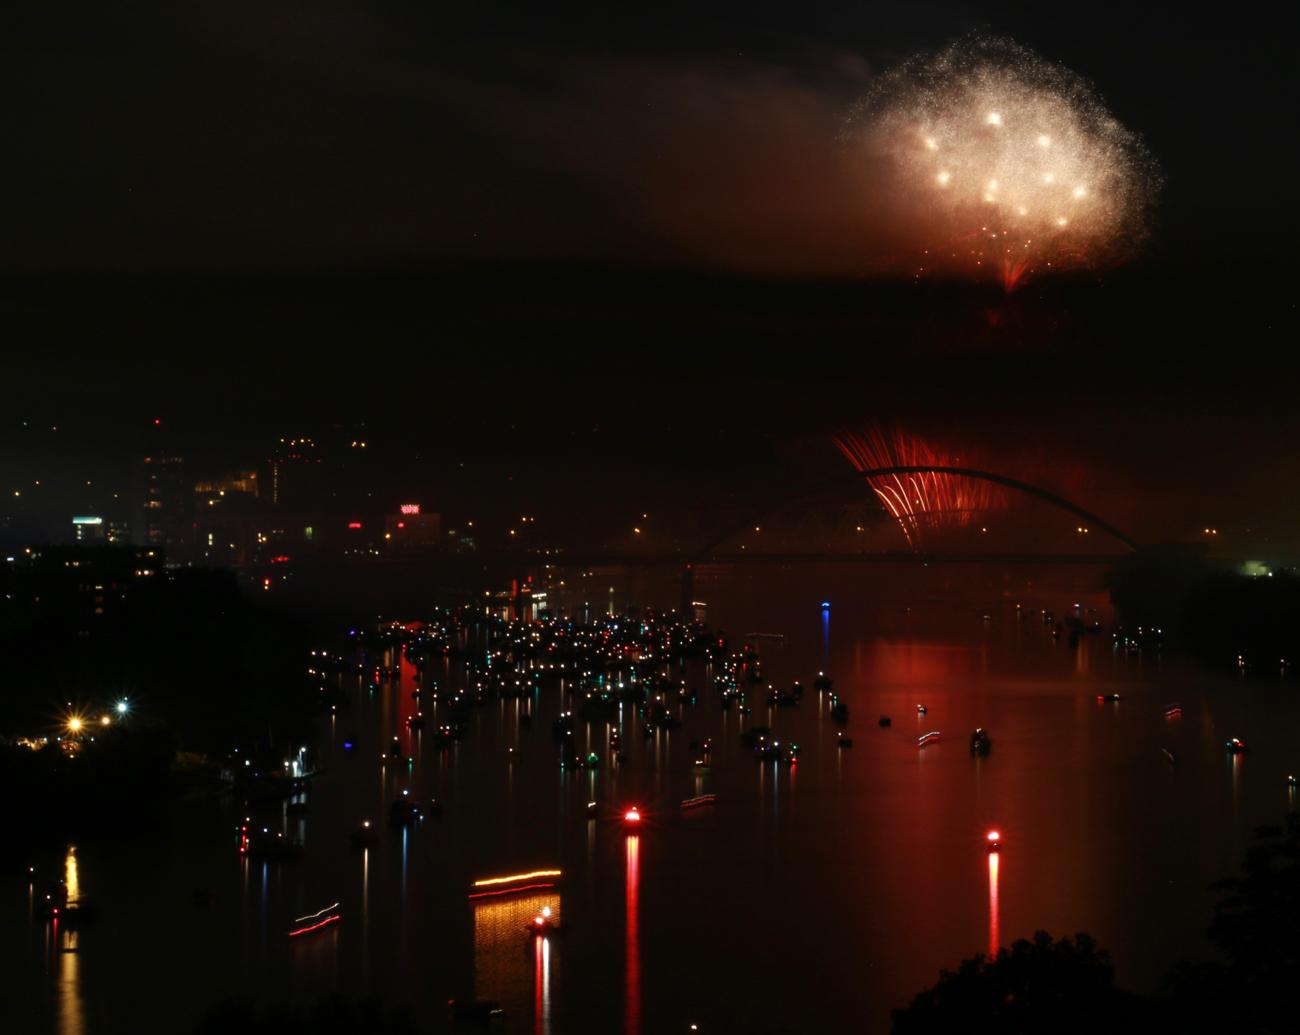 "The 41st annual Western & Southern/WEBN Riverfest fireworks illuminated the sky above the Ohio River on Sunday, September 3. Thousands filled the banks of the Ohio on both sides. The theme for this year's show was ""at the movies."" / Image: Leah Zipperstein, Cincinnati Refined // Published: 9.4.17"